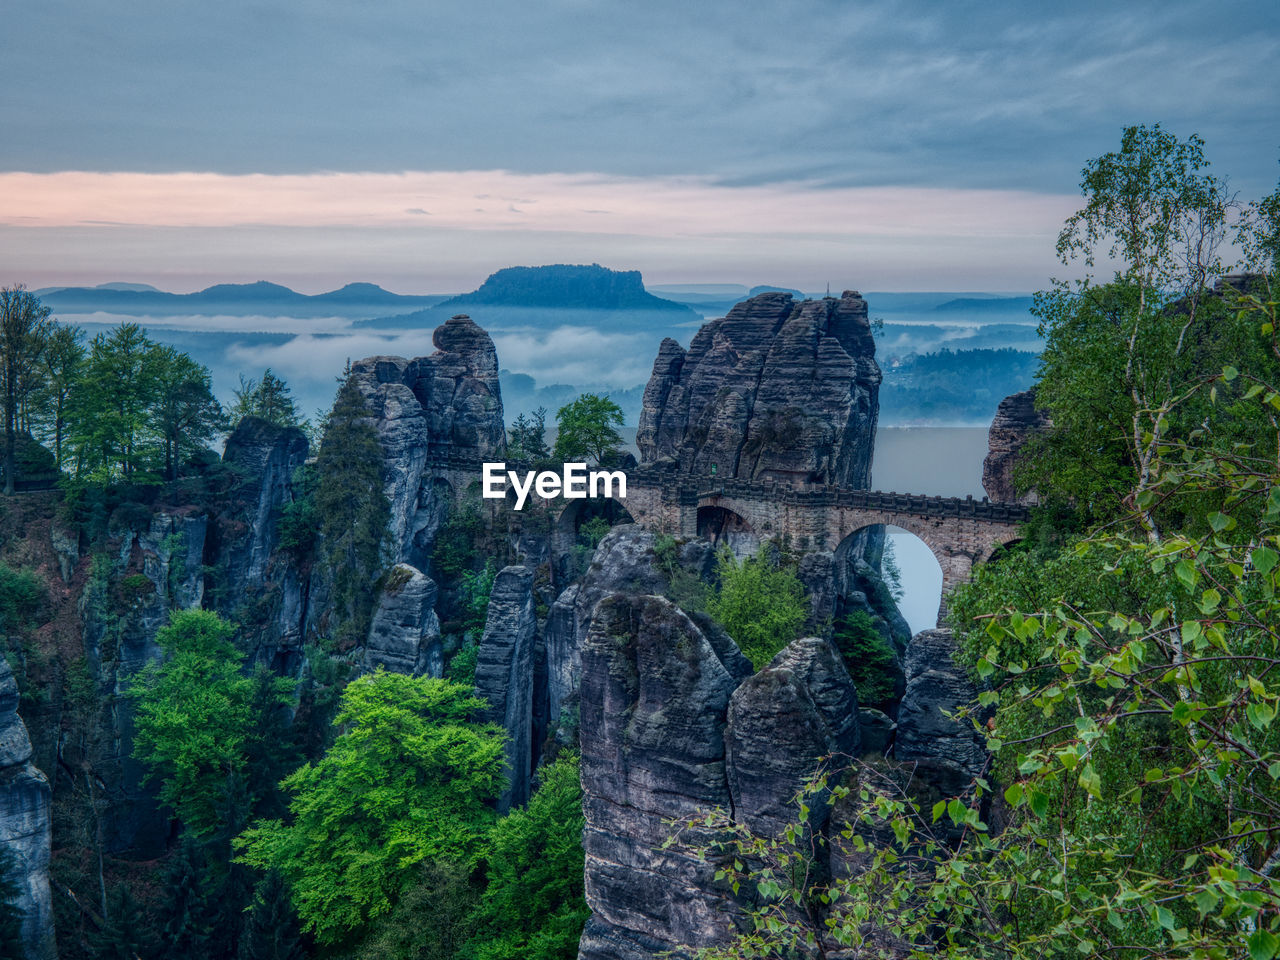 sky, tree, nature, travel, beauty in nature, travel destinations, plant, cloud - sky, architecture, mountain, built structure, rock formation, scenics - nature, tourism, rock, no people, day, water, tranquil scene, solid, outdoors, arch bridge, formation